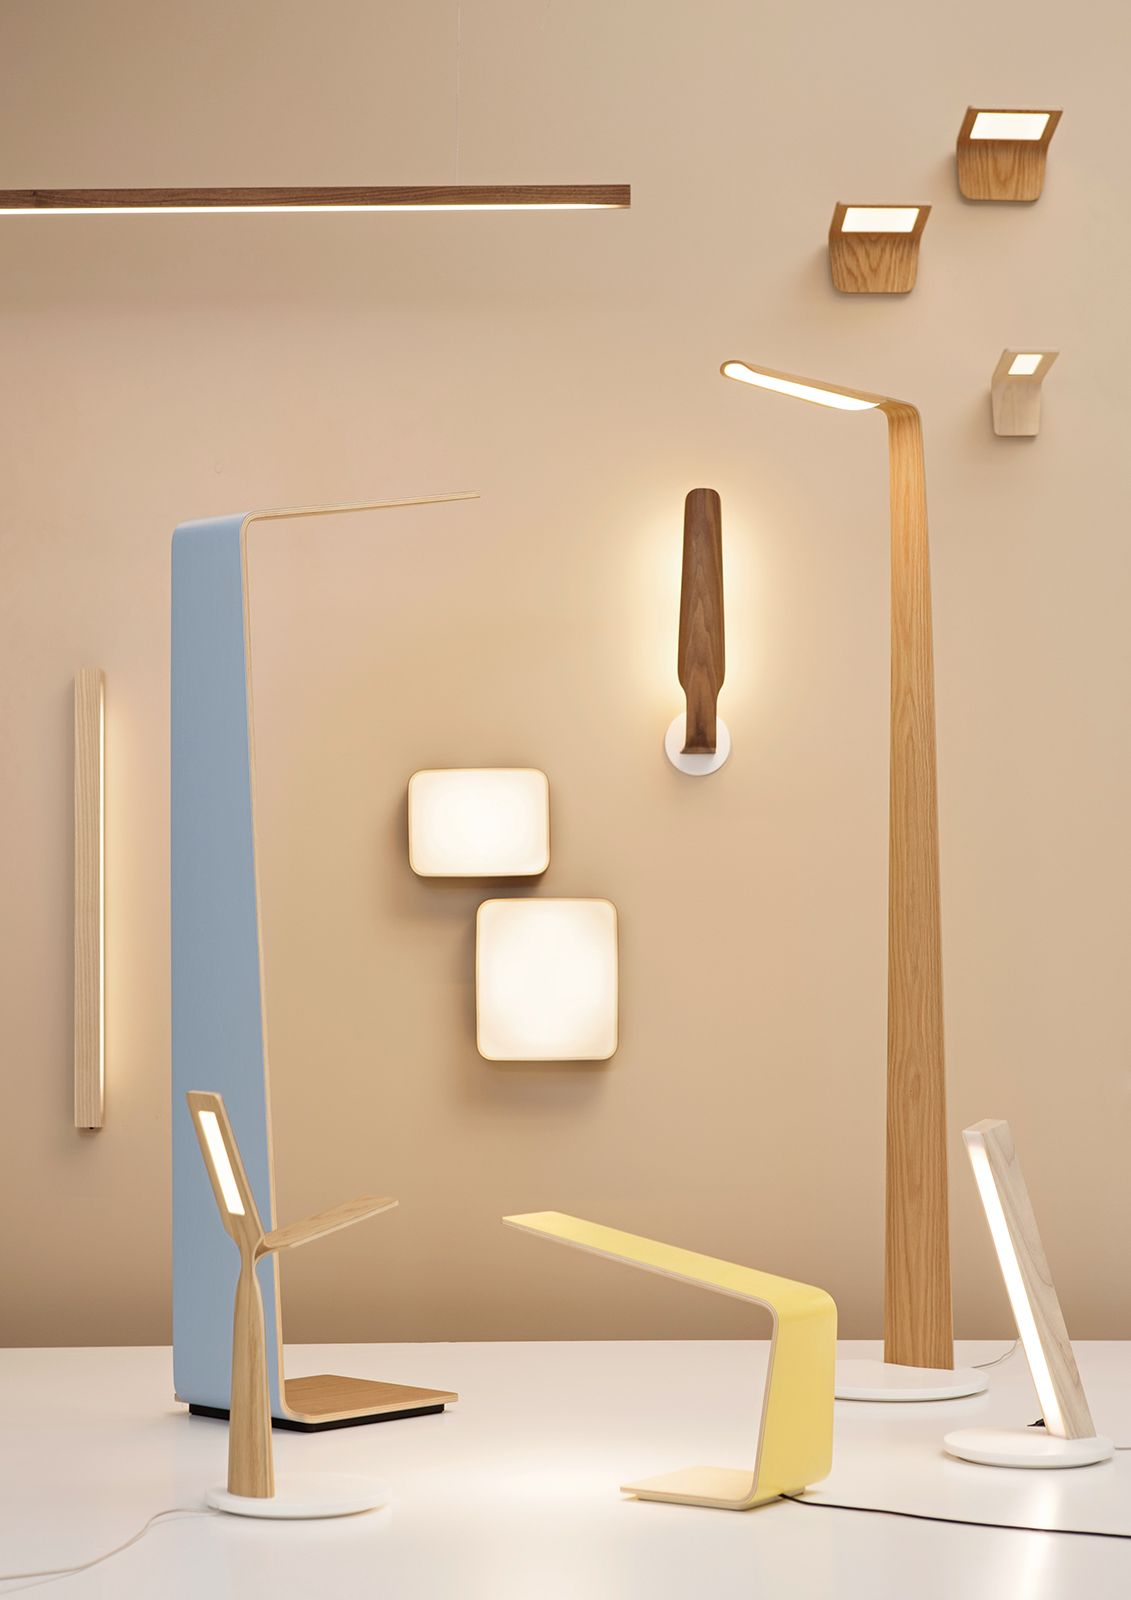 Barazzi proposes the range of lamps, light, floor lamp and